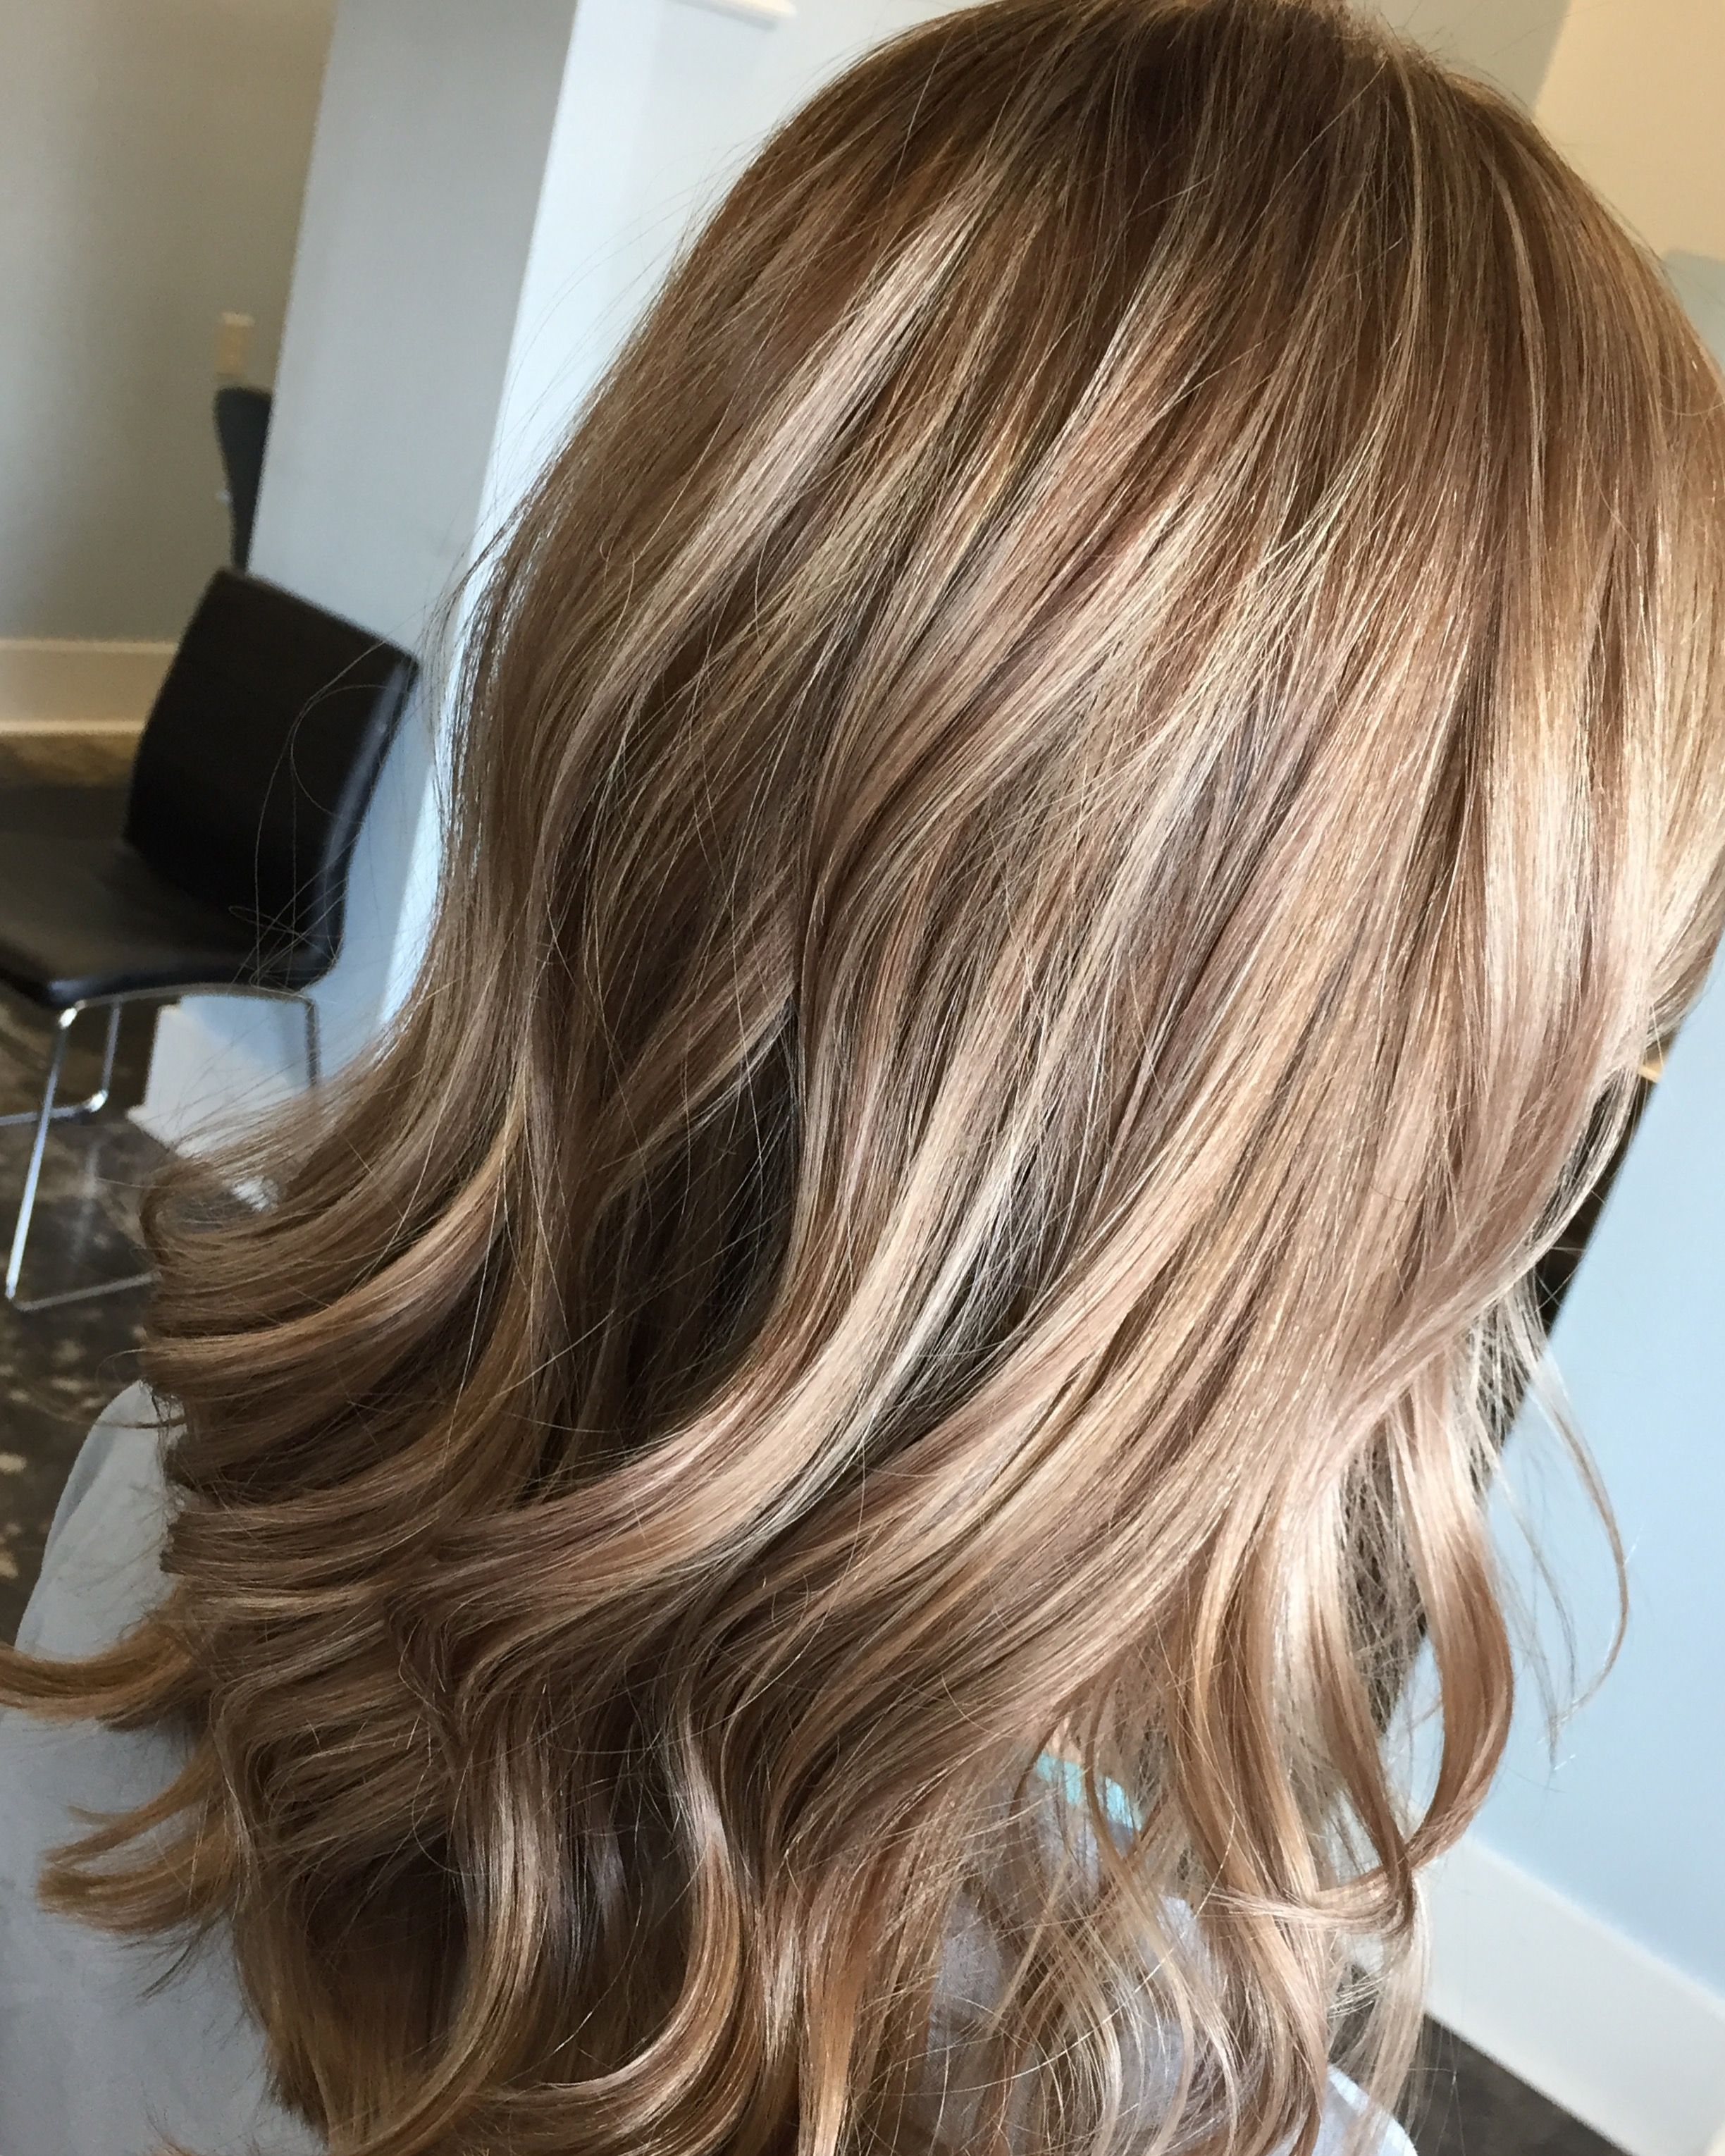 Blonde Foiled Highlights With Level 8 Base Highlights Paulmitchell Summerhair Blonde Hair Levels Hair Levels Level 7 Hair Color